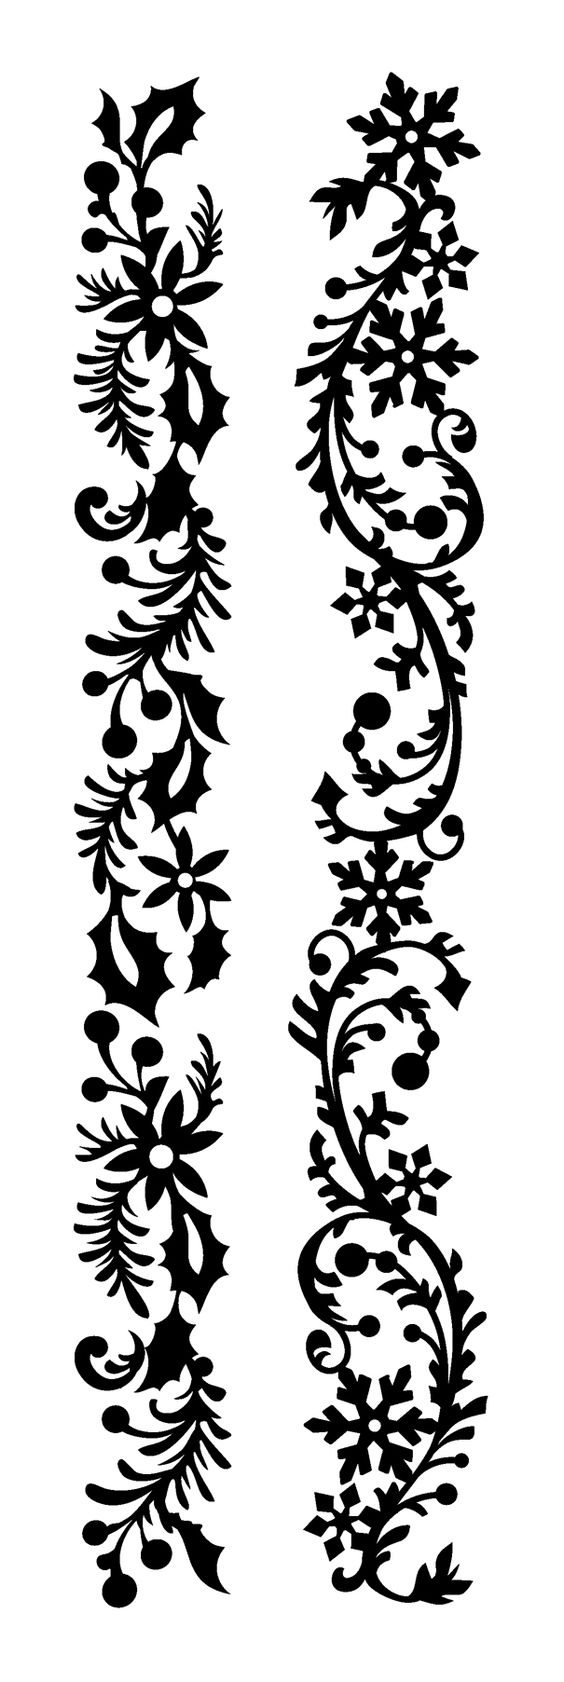 Clip Art Black and White Needle Pine Garland – Cliparts